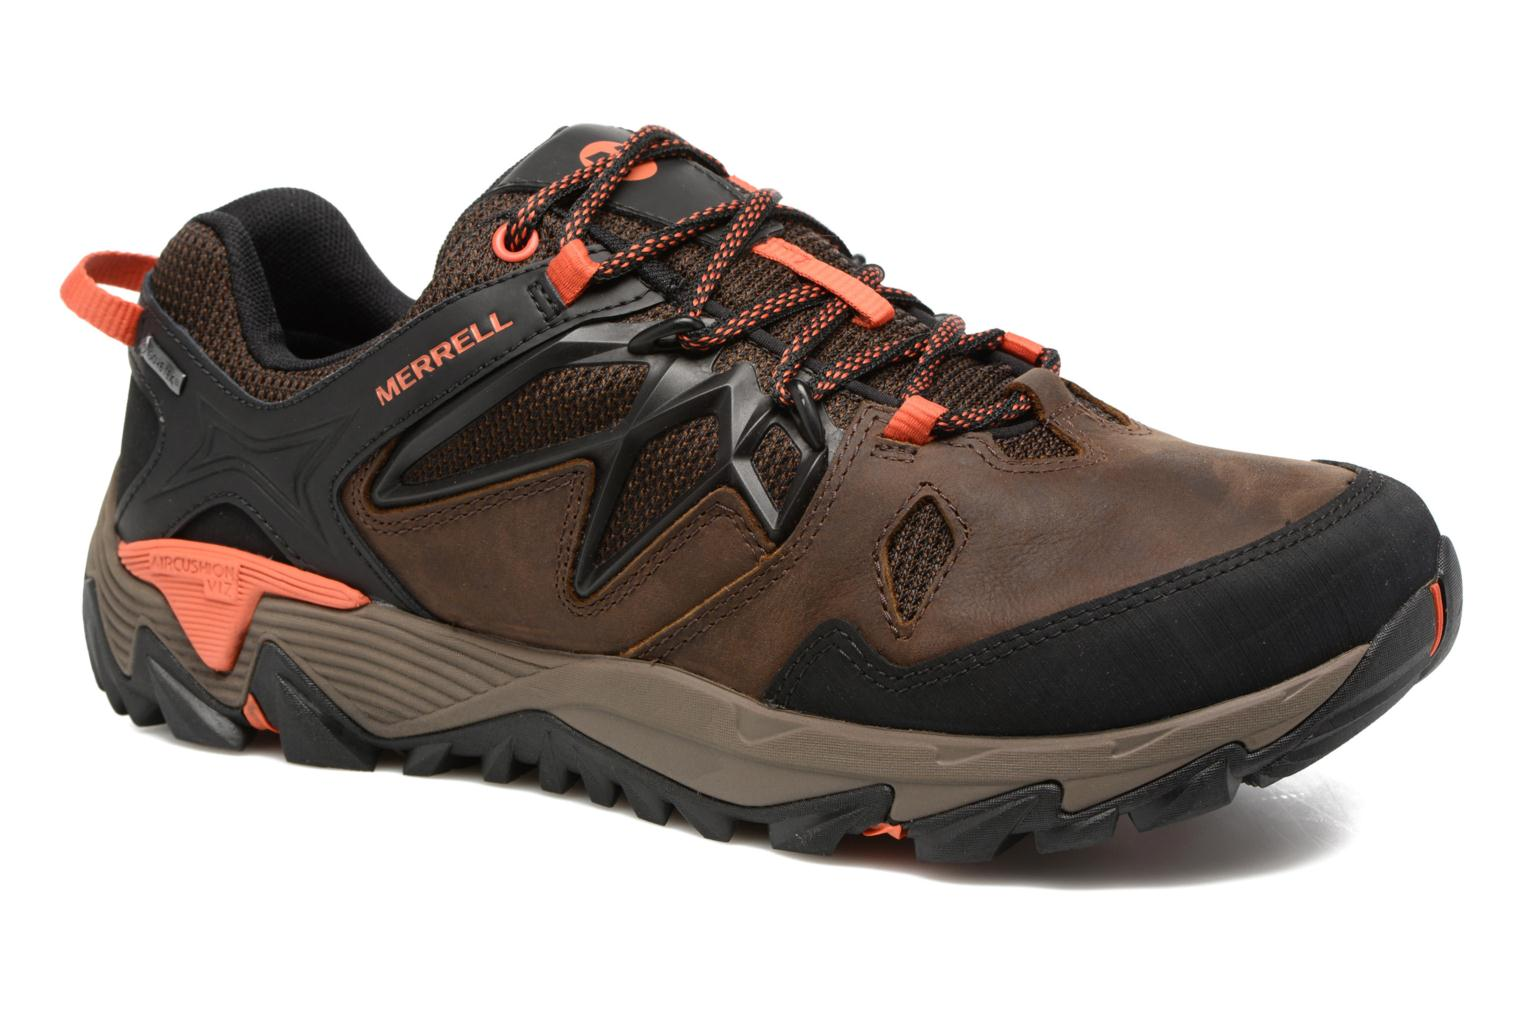 All Out Blaze 2 Gtx by MerrellRebajas - 20%